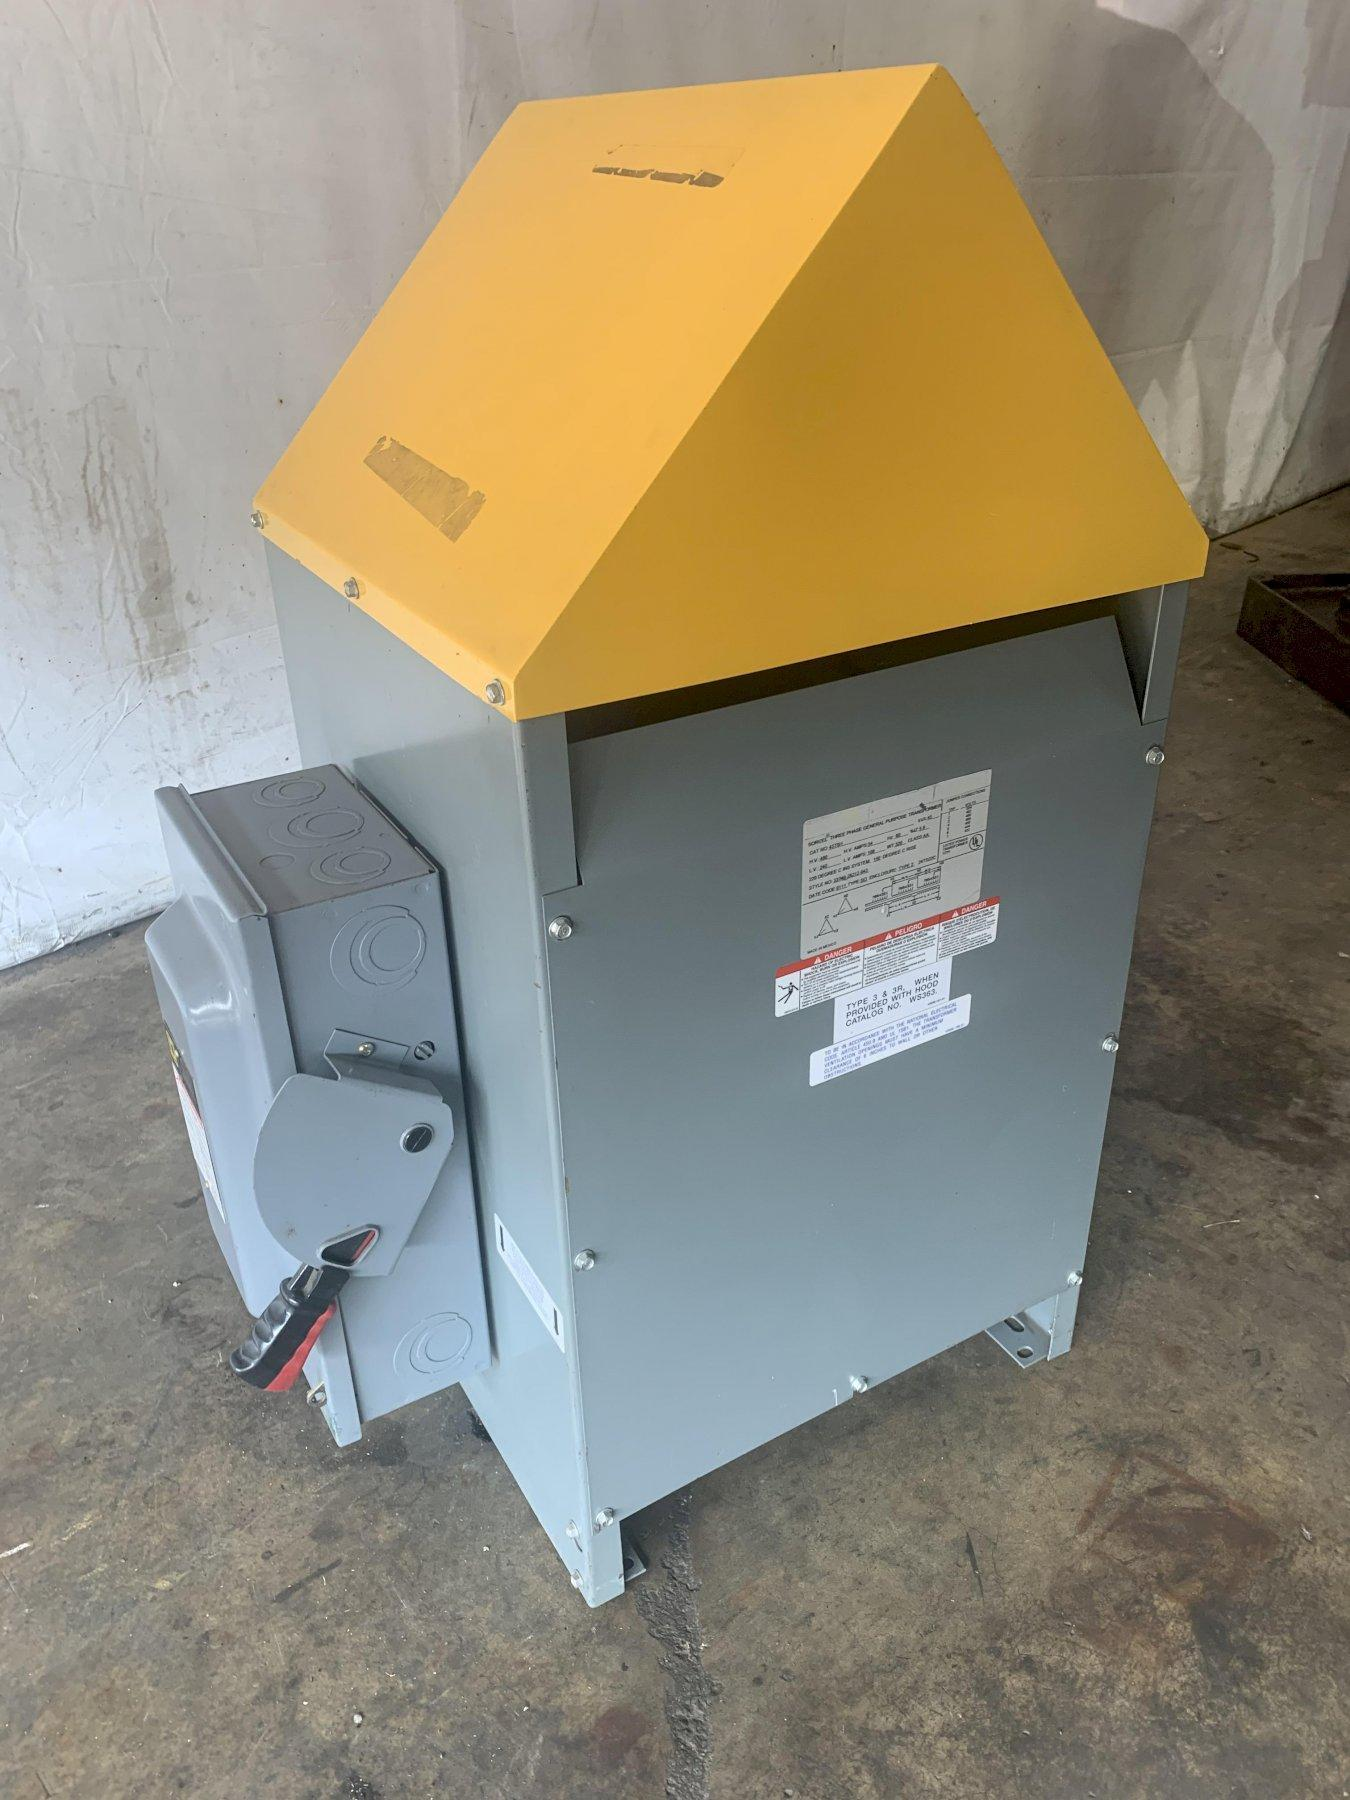 45 KVA SORGEL 480 / 240 VOLT THREE PHASE ELECTRICAL TRANSFORMER WITH 2 DISCONNECTS: STOCK 13695